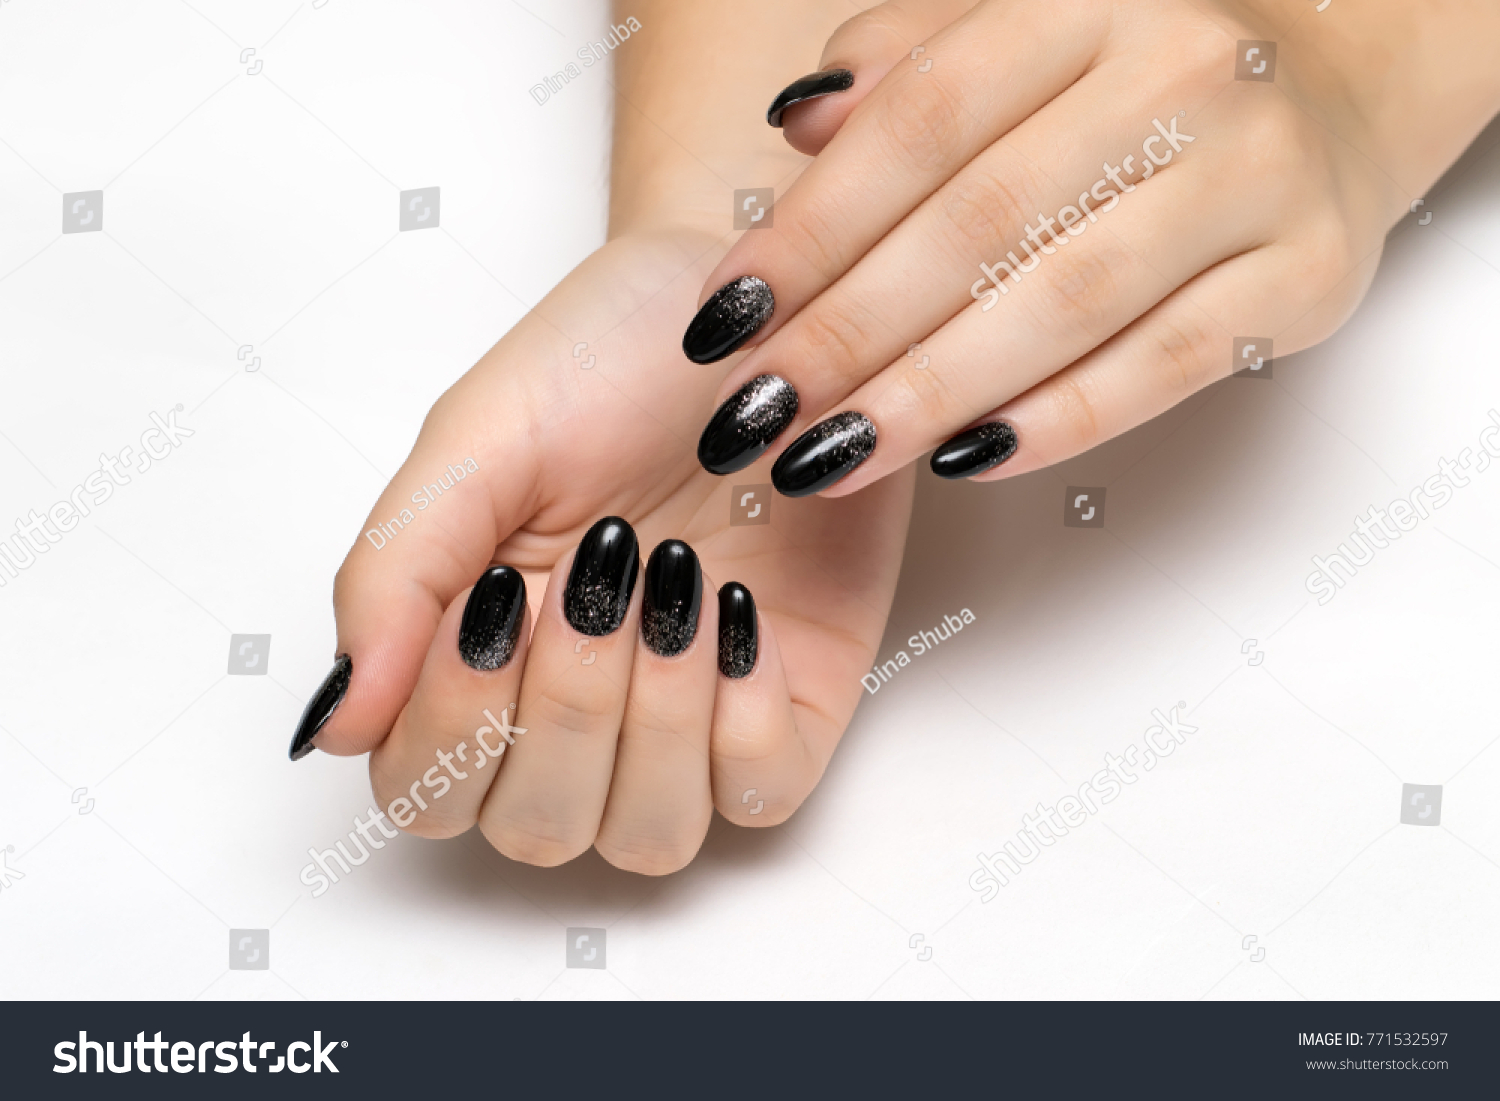 Festive Black Manicure Silver Sequins On Stock Photo 771532597 ...